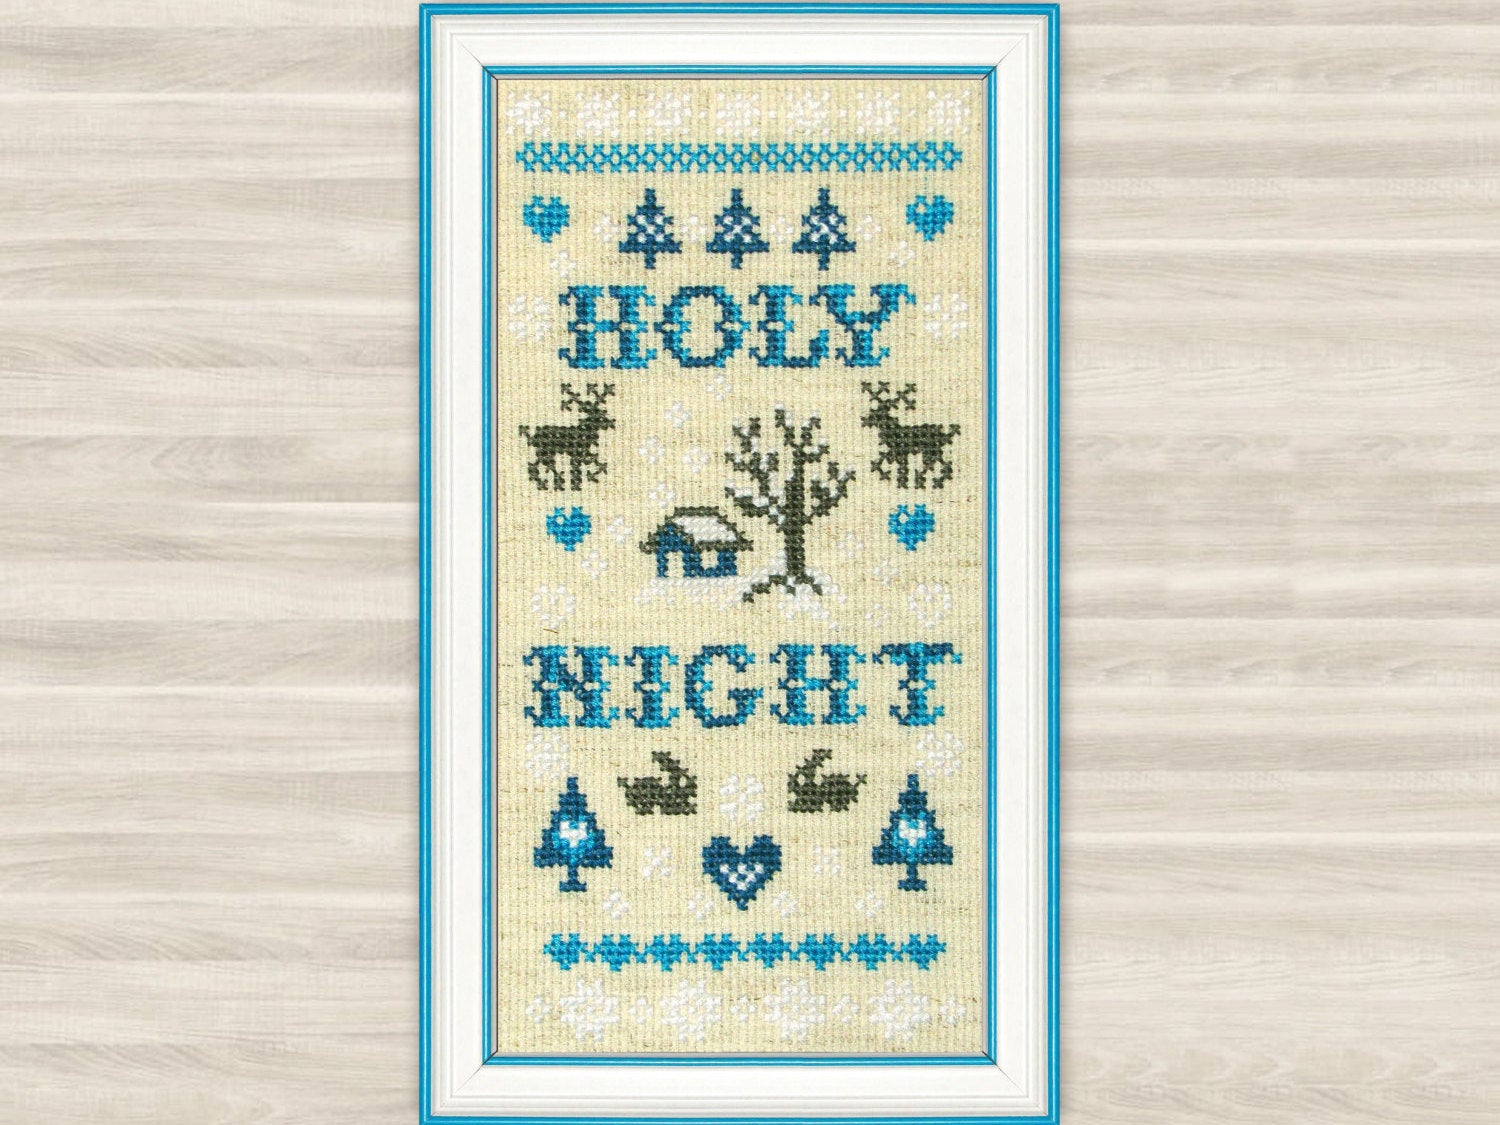 Embroidery Sampler Patterns Free Buy 2 Get 1 Free Holy Night Cross Stitch Pattern Pdf Christmas Deer Home Decor Christmas Gift Winter Sampler Snow Embroidery Blue Primitive